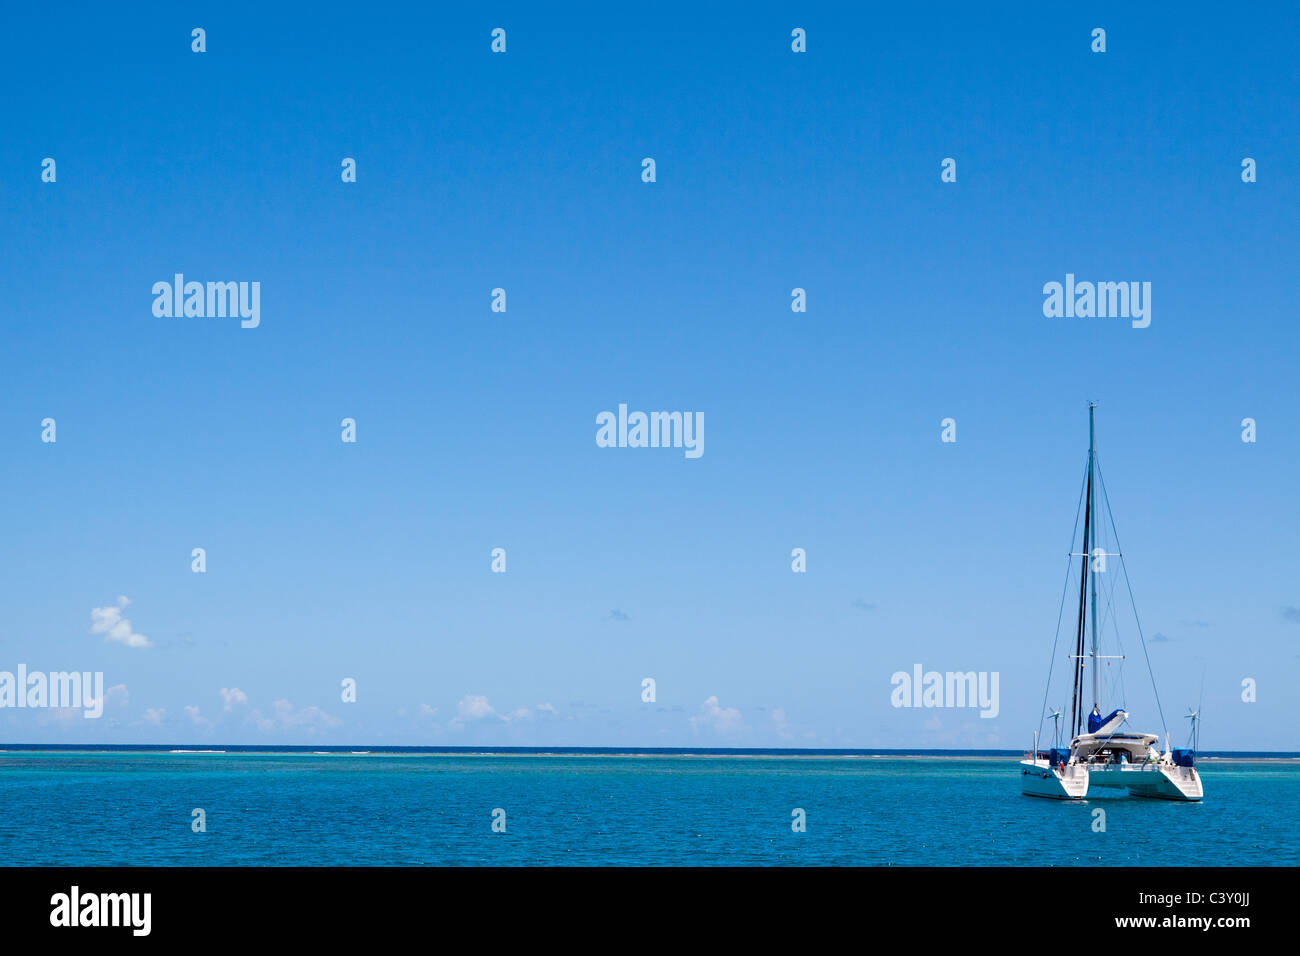 Sparse image of catamaran sailboat moored in turquoise water and blue sky in Caribbean Sea - Stock Image